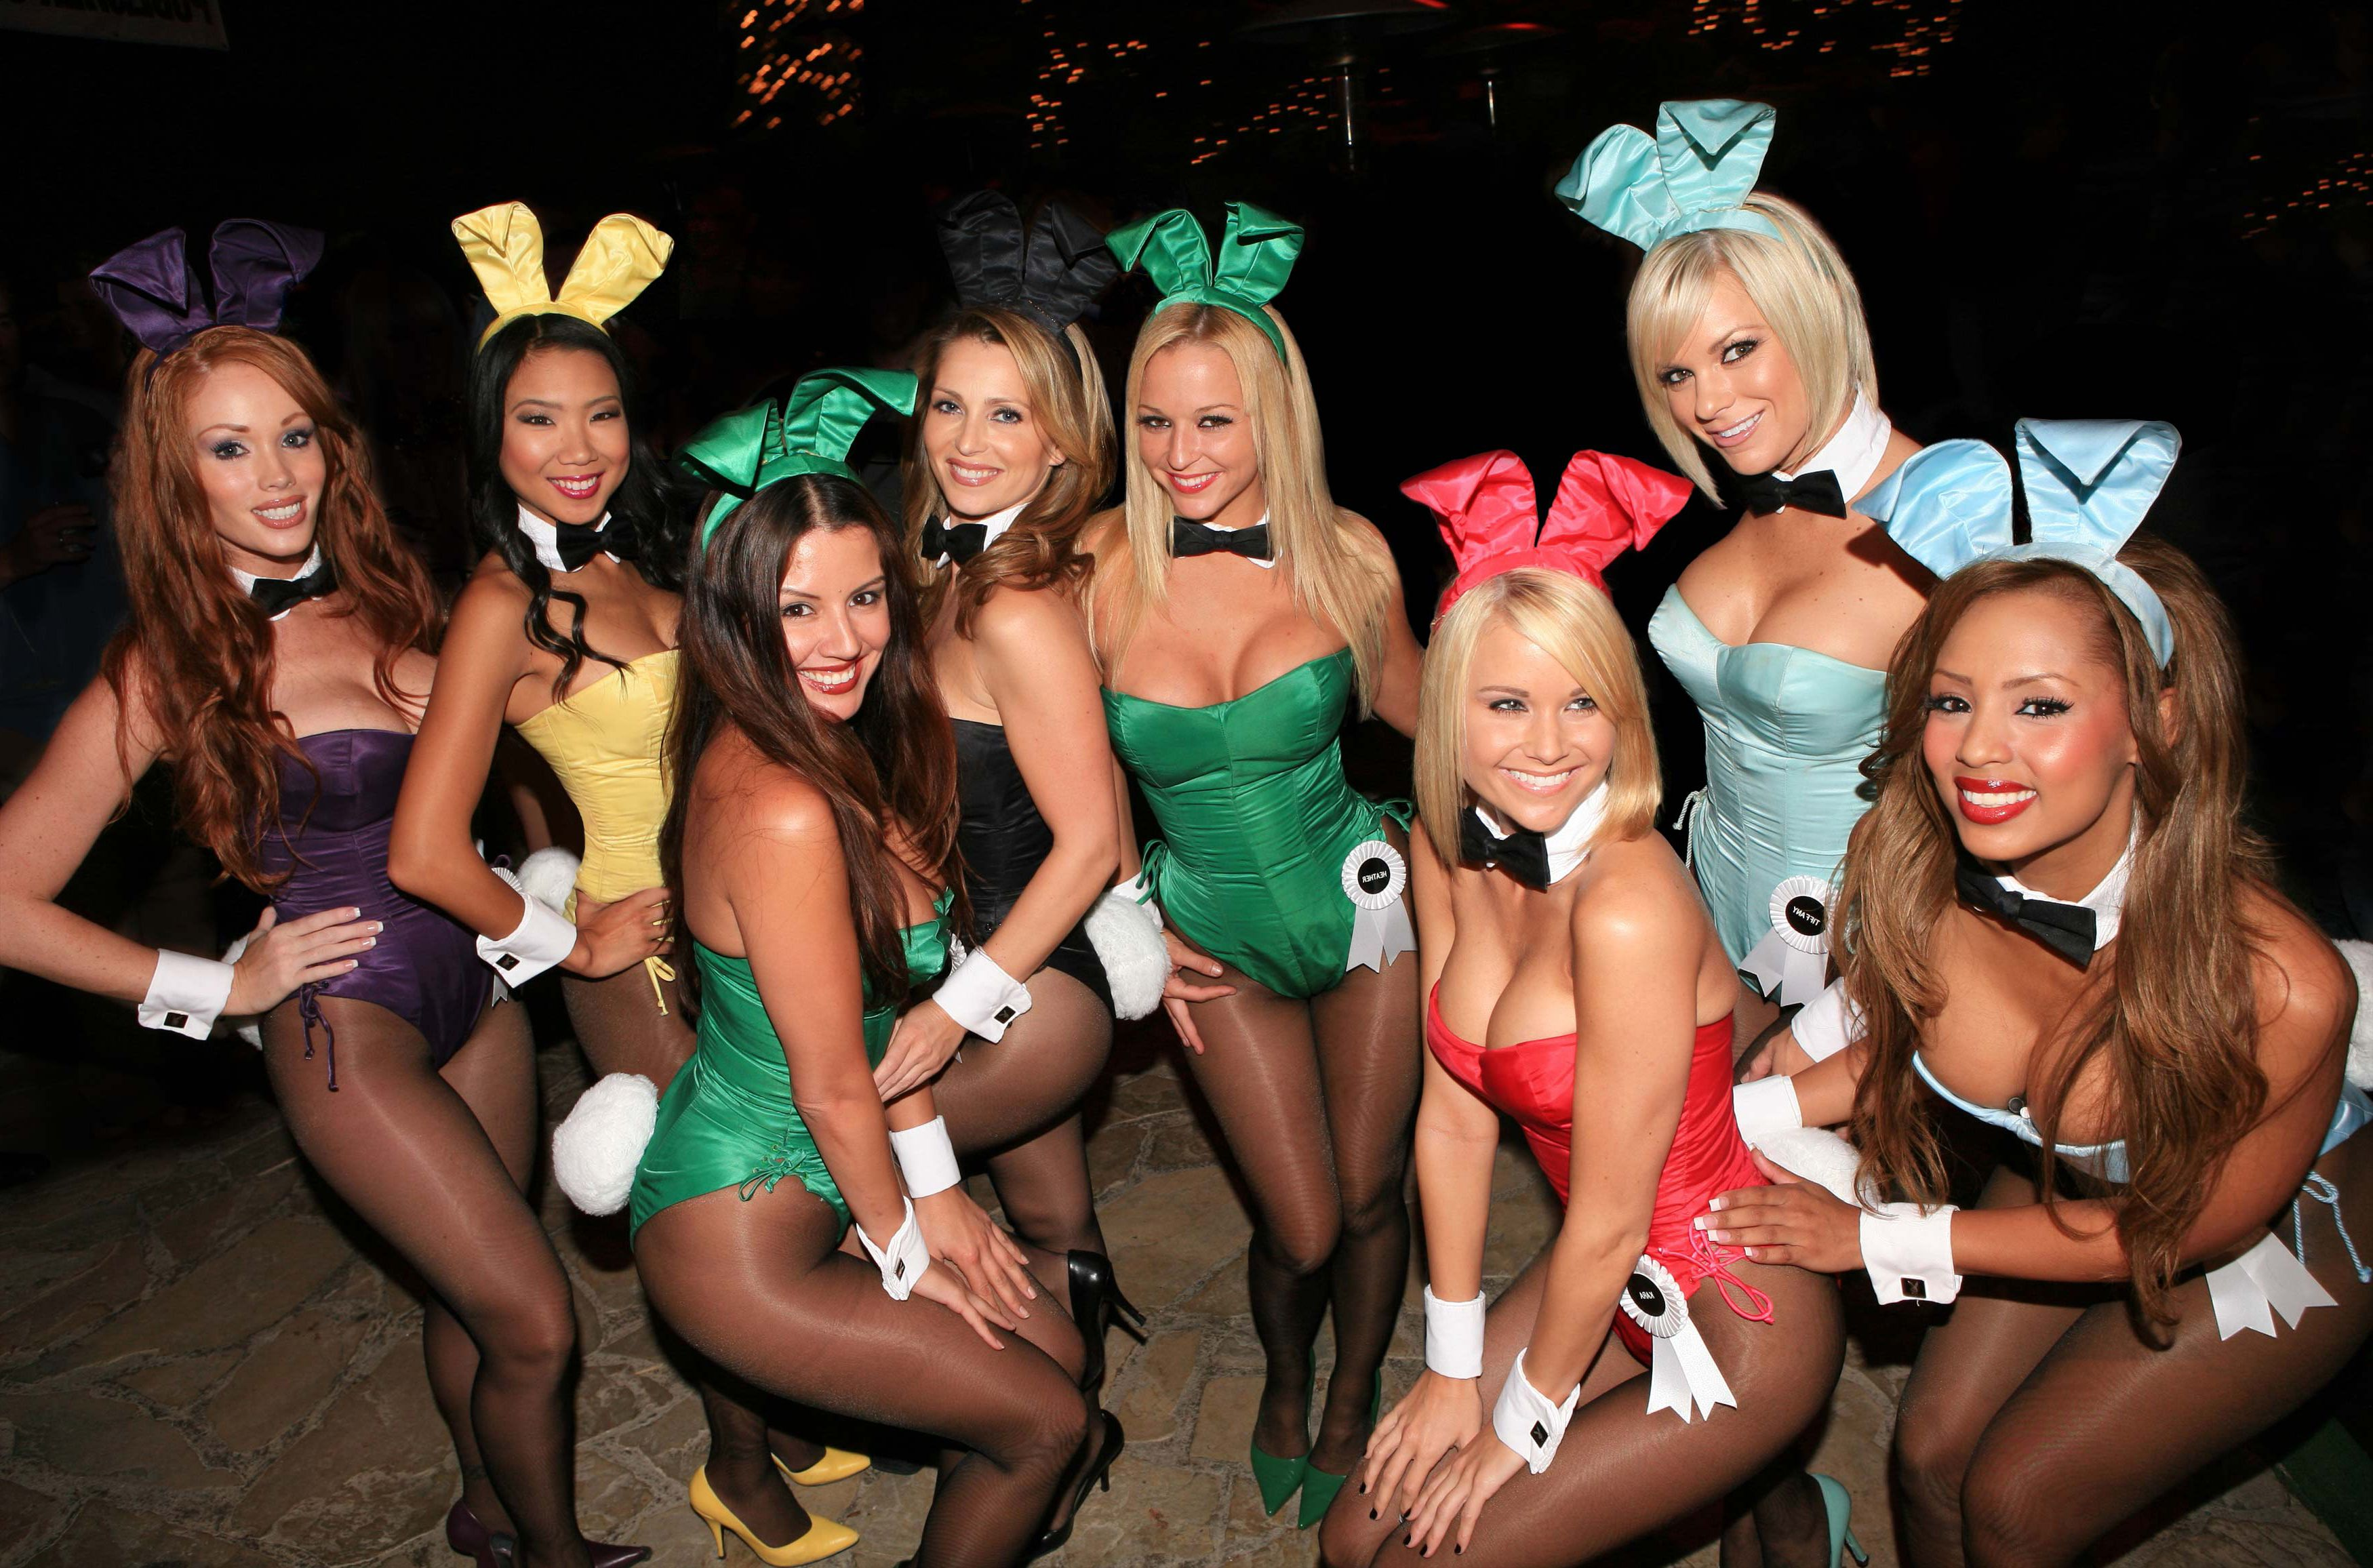 Four Hot Blonde Party Girls Get Crazy